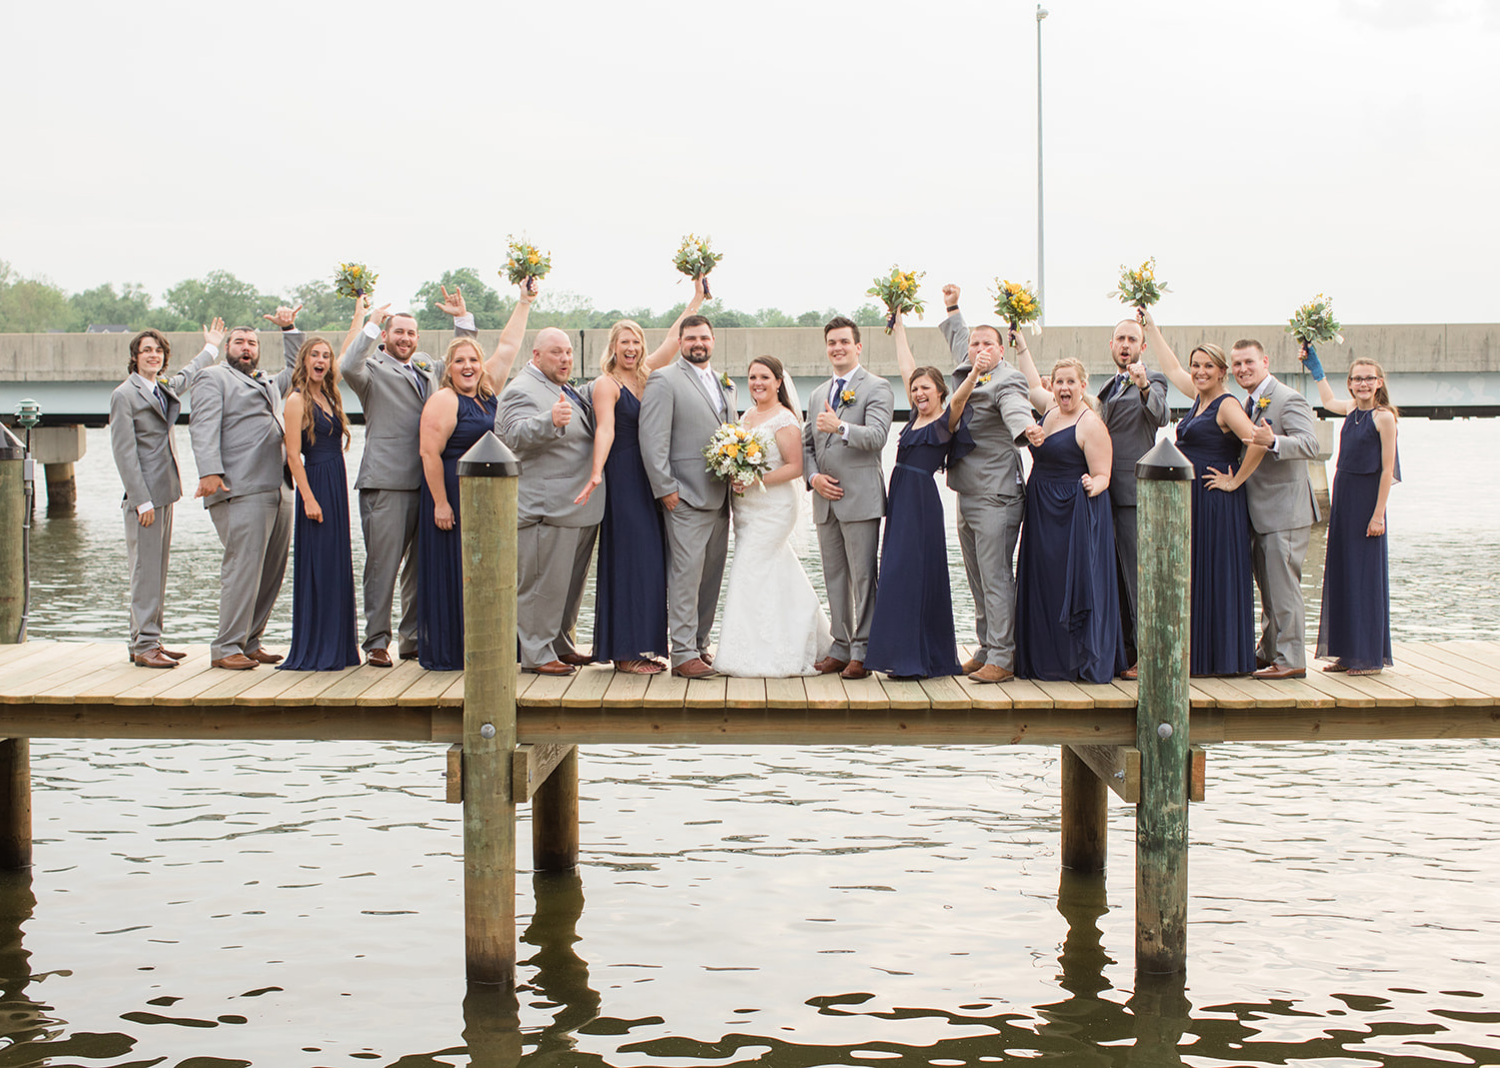 bride and groom with their wedding party on the pier